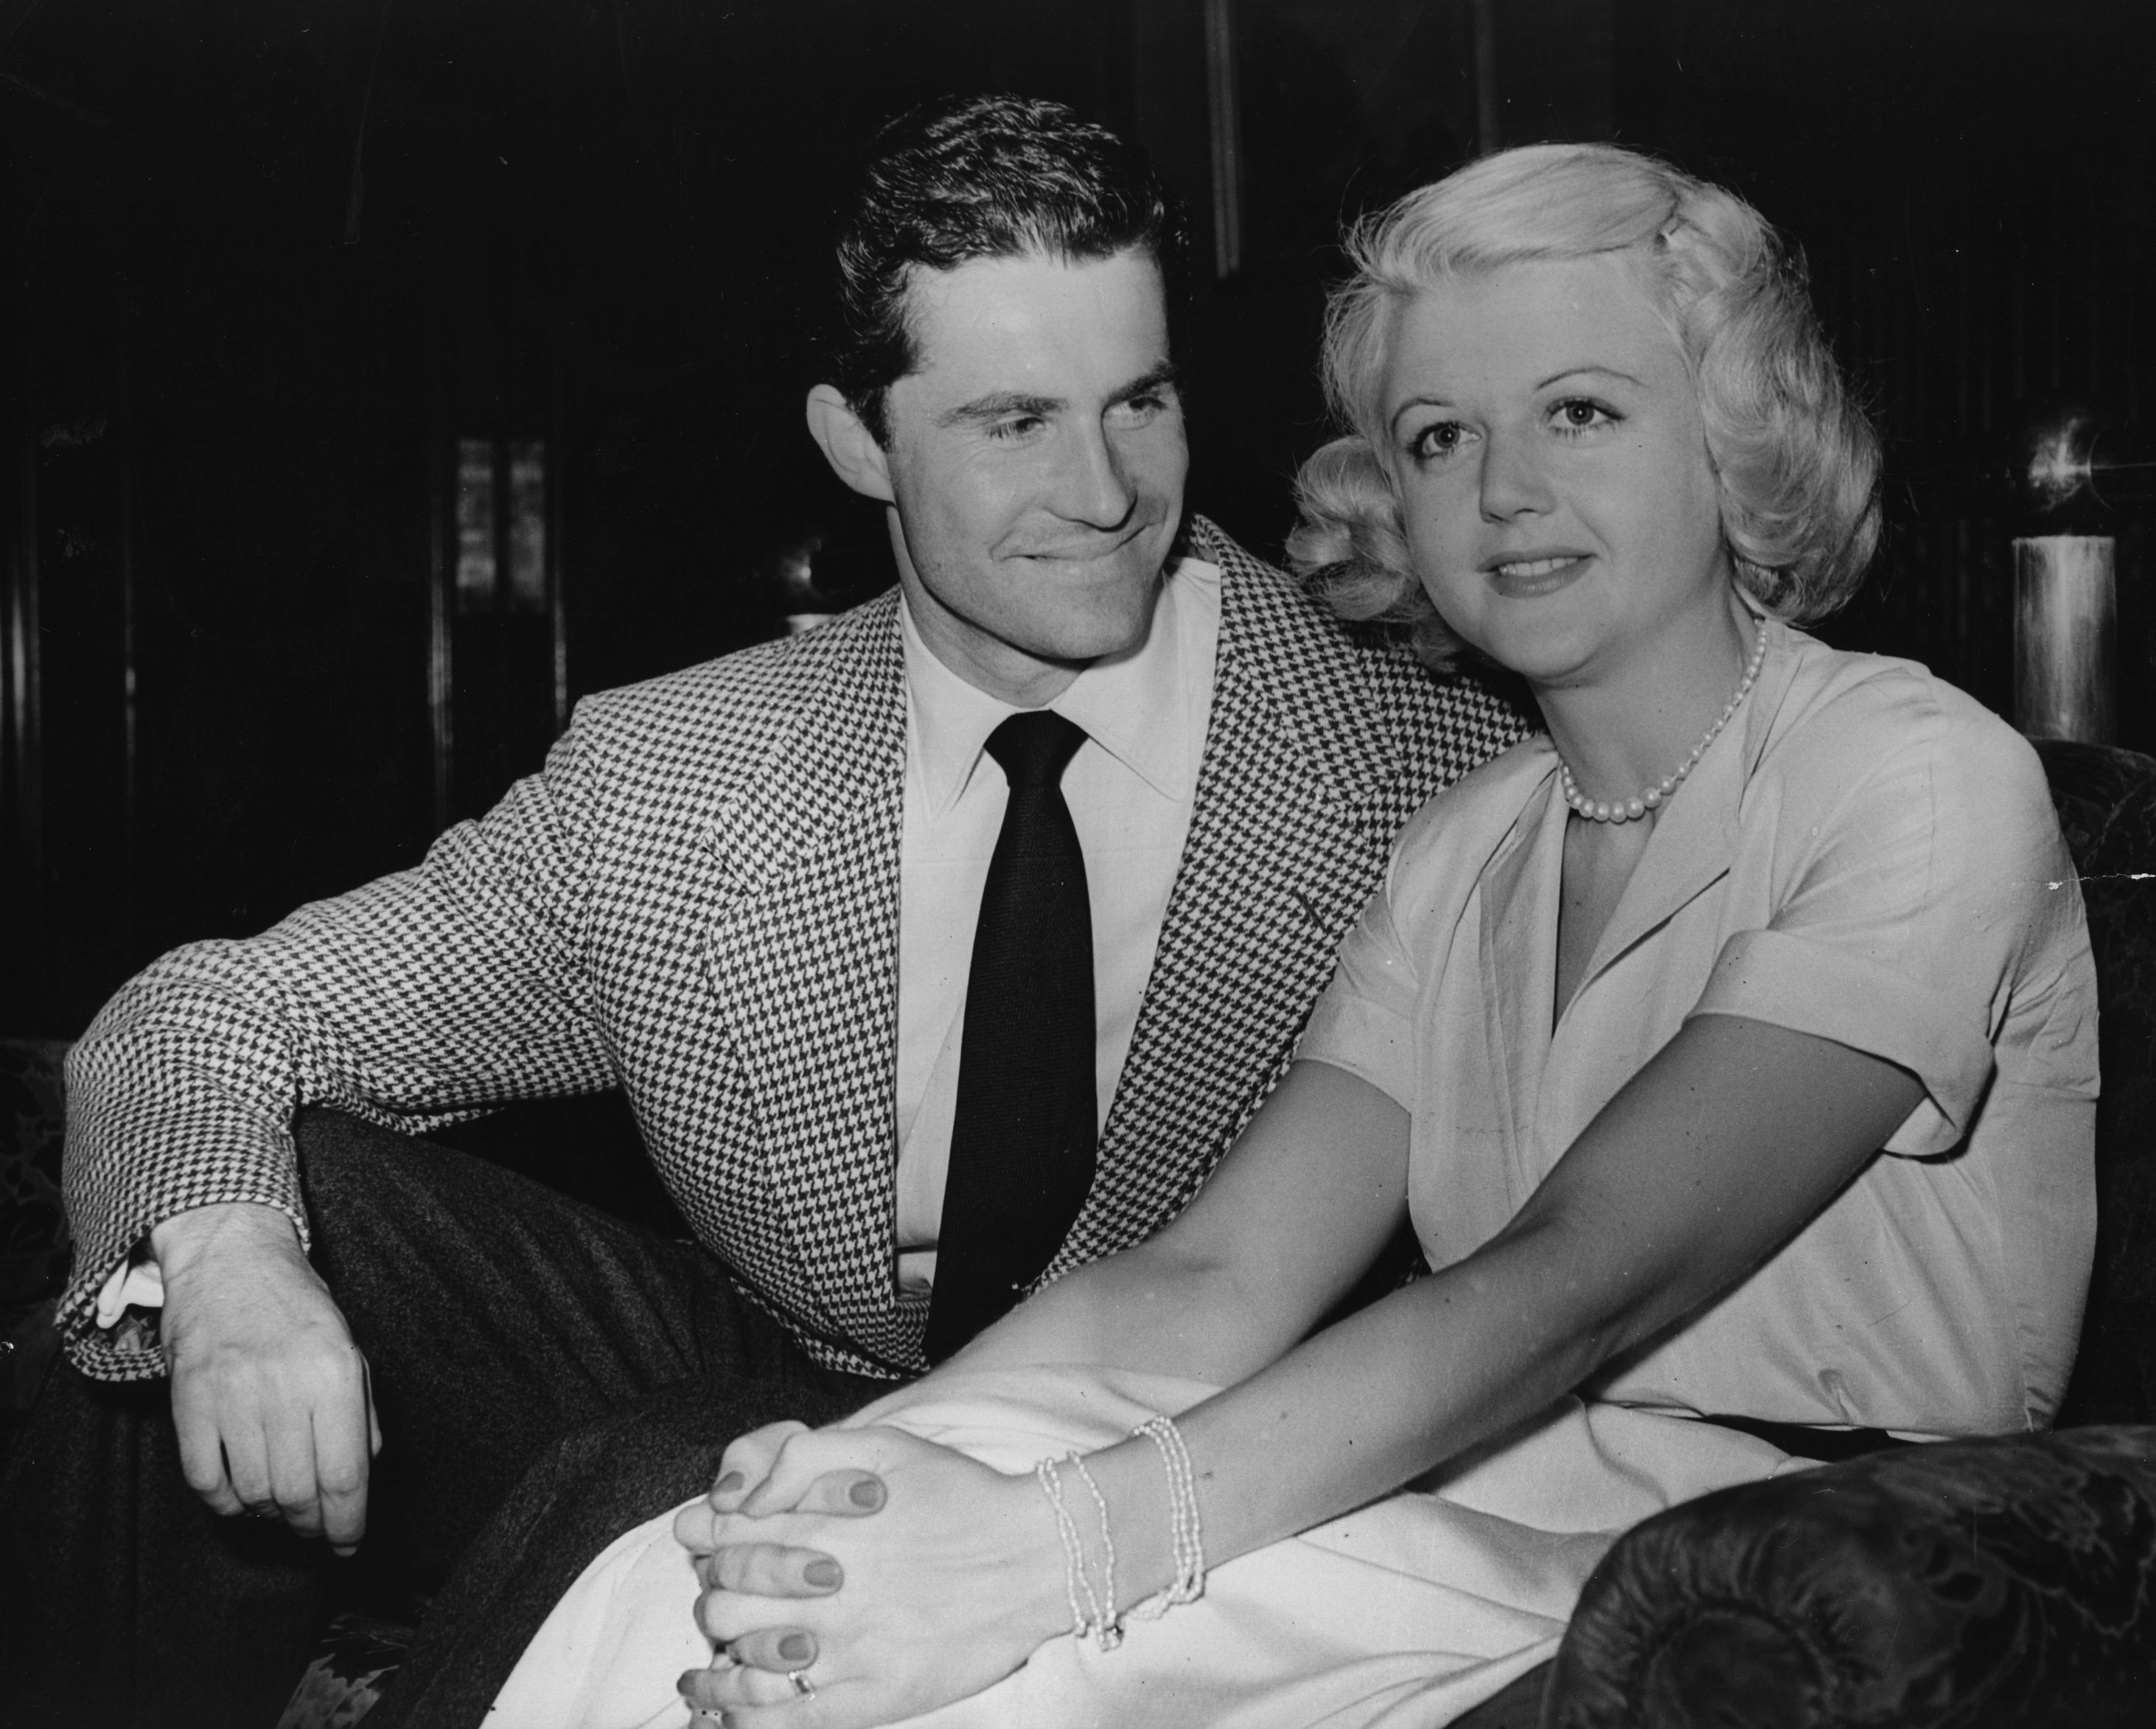 Angela Lansbury with Peter Shaw in London, England on July 27, 1949 | Source: Getty Images